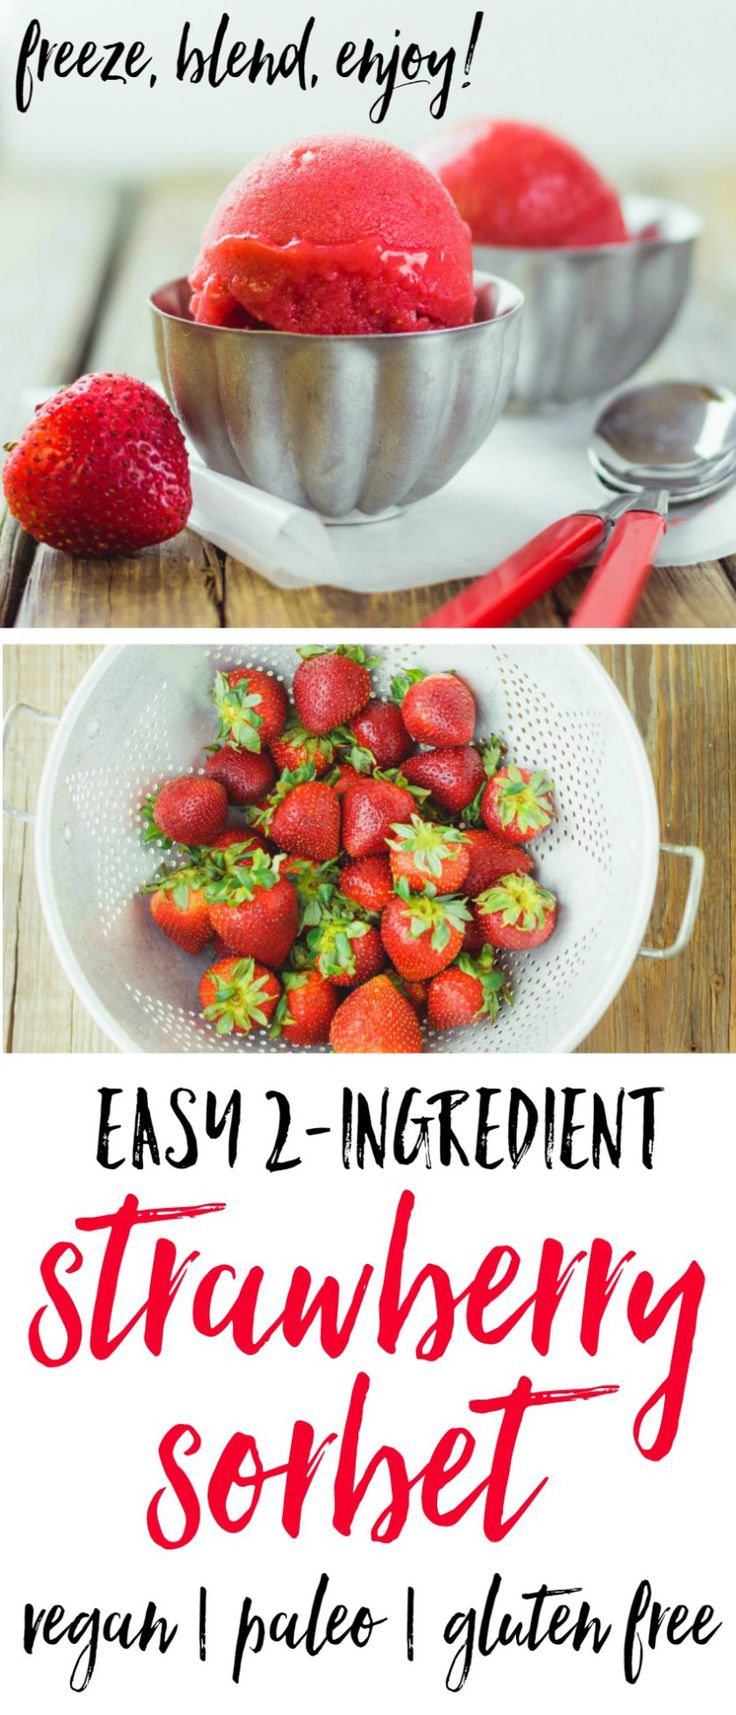 I love this easy strawberry sorbet! Frozen strawberries, a touch of maple syrup and a food processor is all you need.